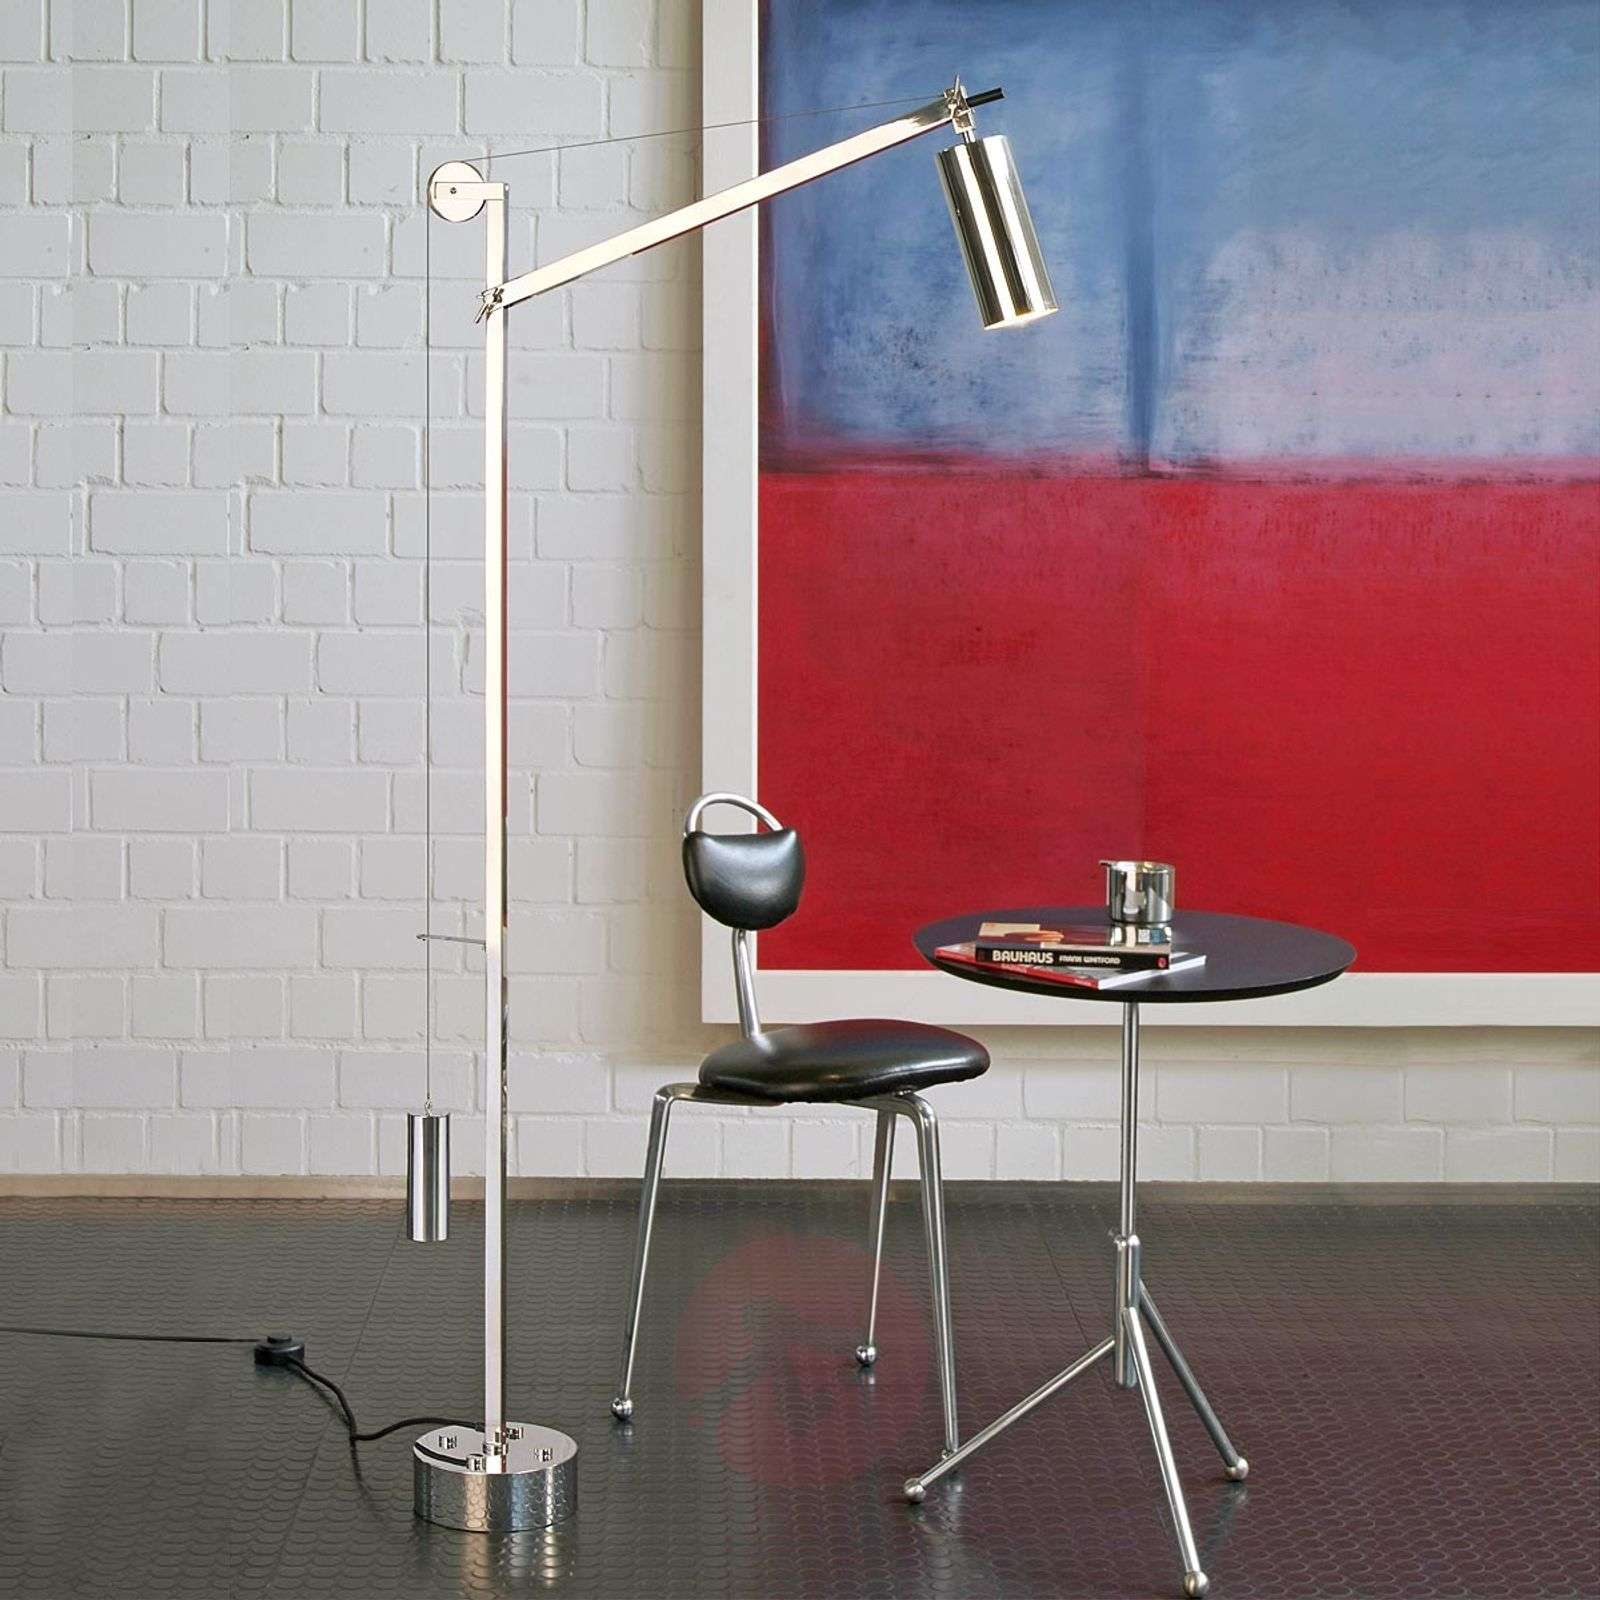 Floor lamp in the bauhaus style with counterweight lights floor lamp in the bauhaus style with counterweight 9030016 01 aloadofball Image collections